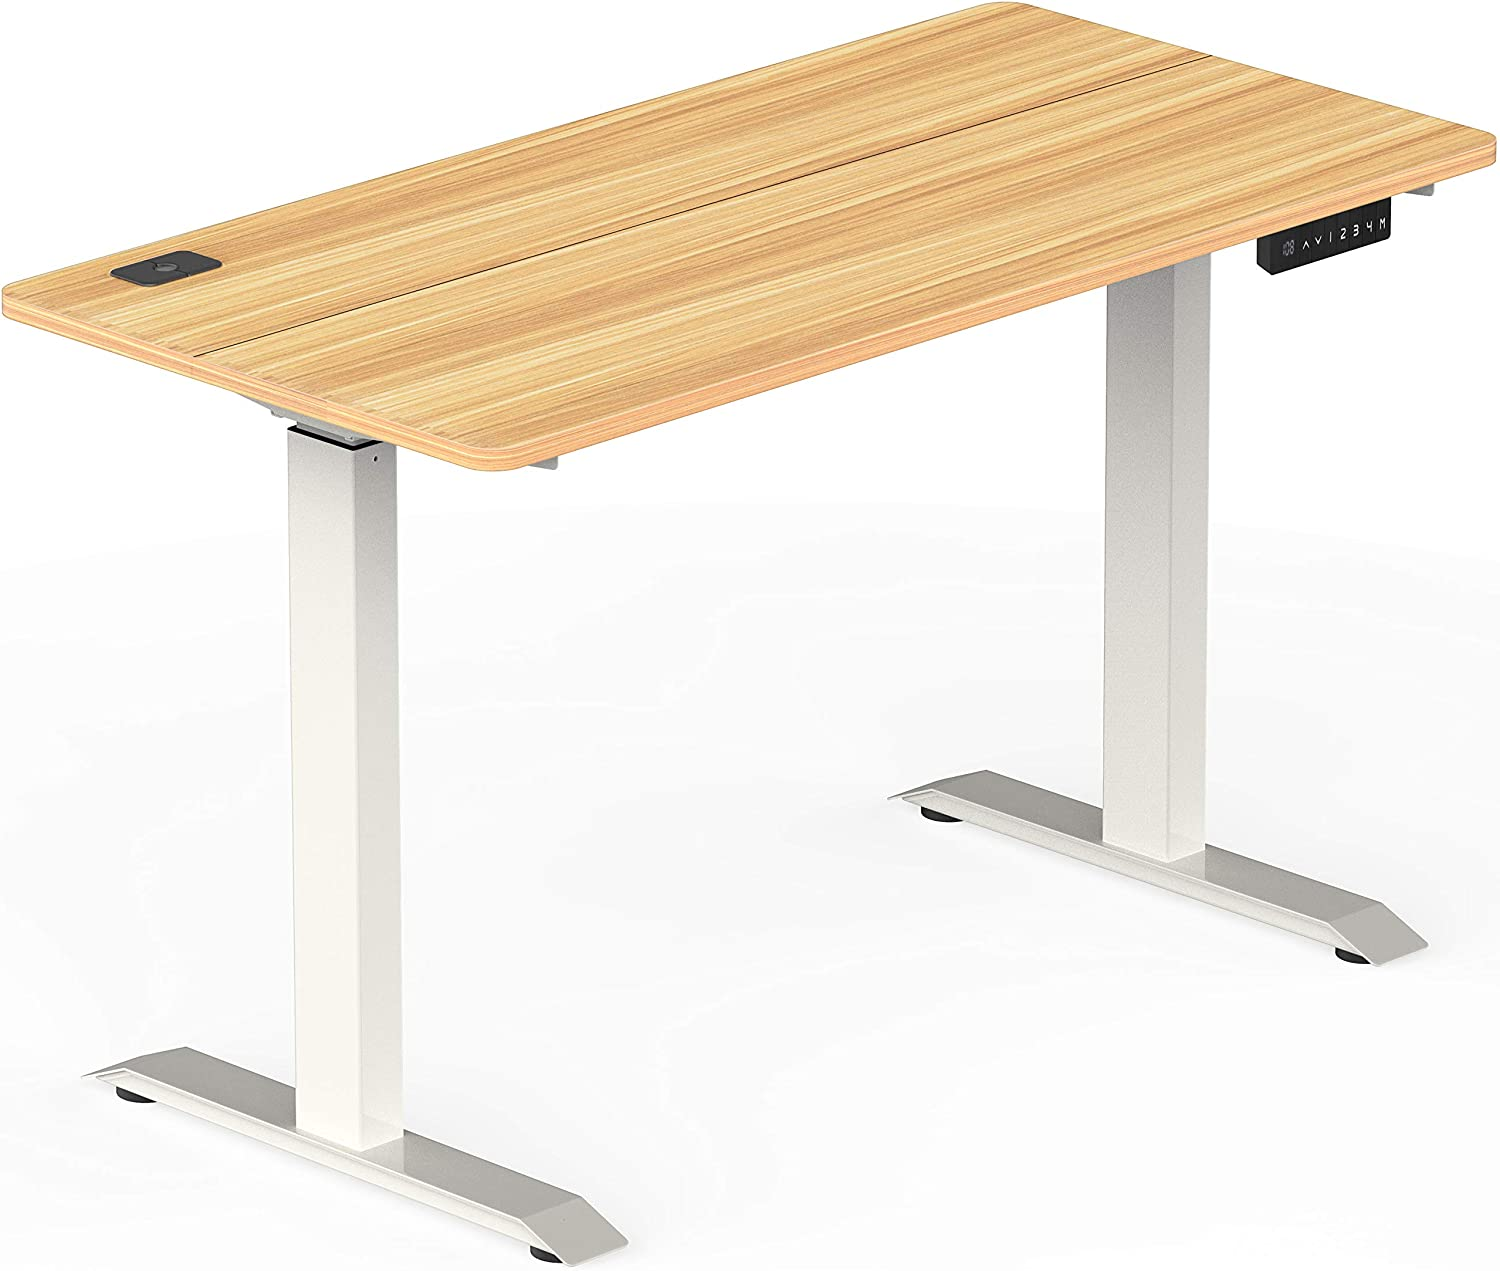 Shw Standing Desk Electric Height Adjustable Computer Desk 120 X 60 Cm 48 X 24 Inches Maple Amazon Ca Home Kitchen